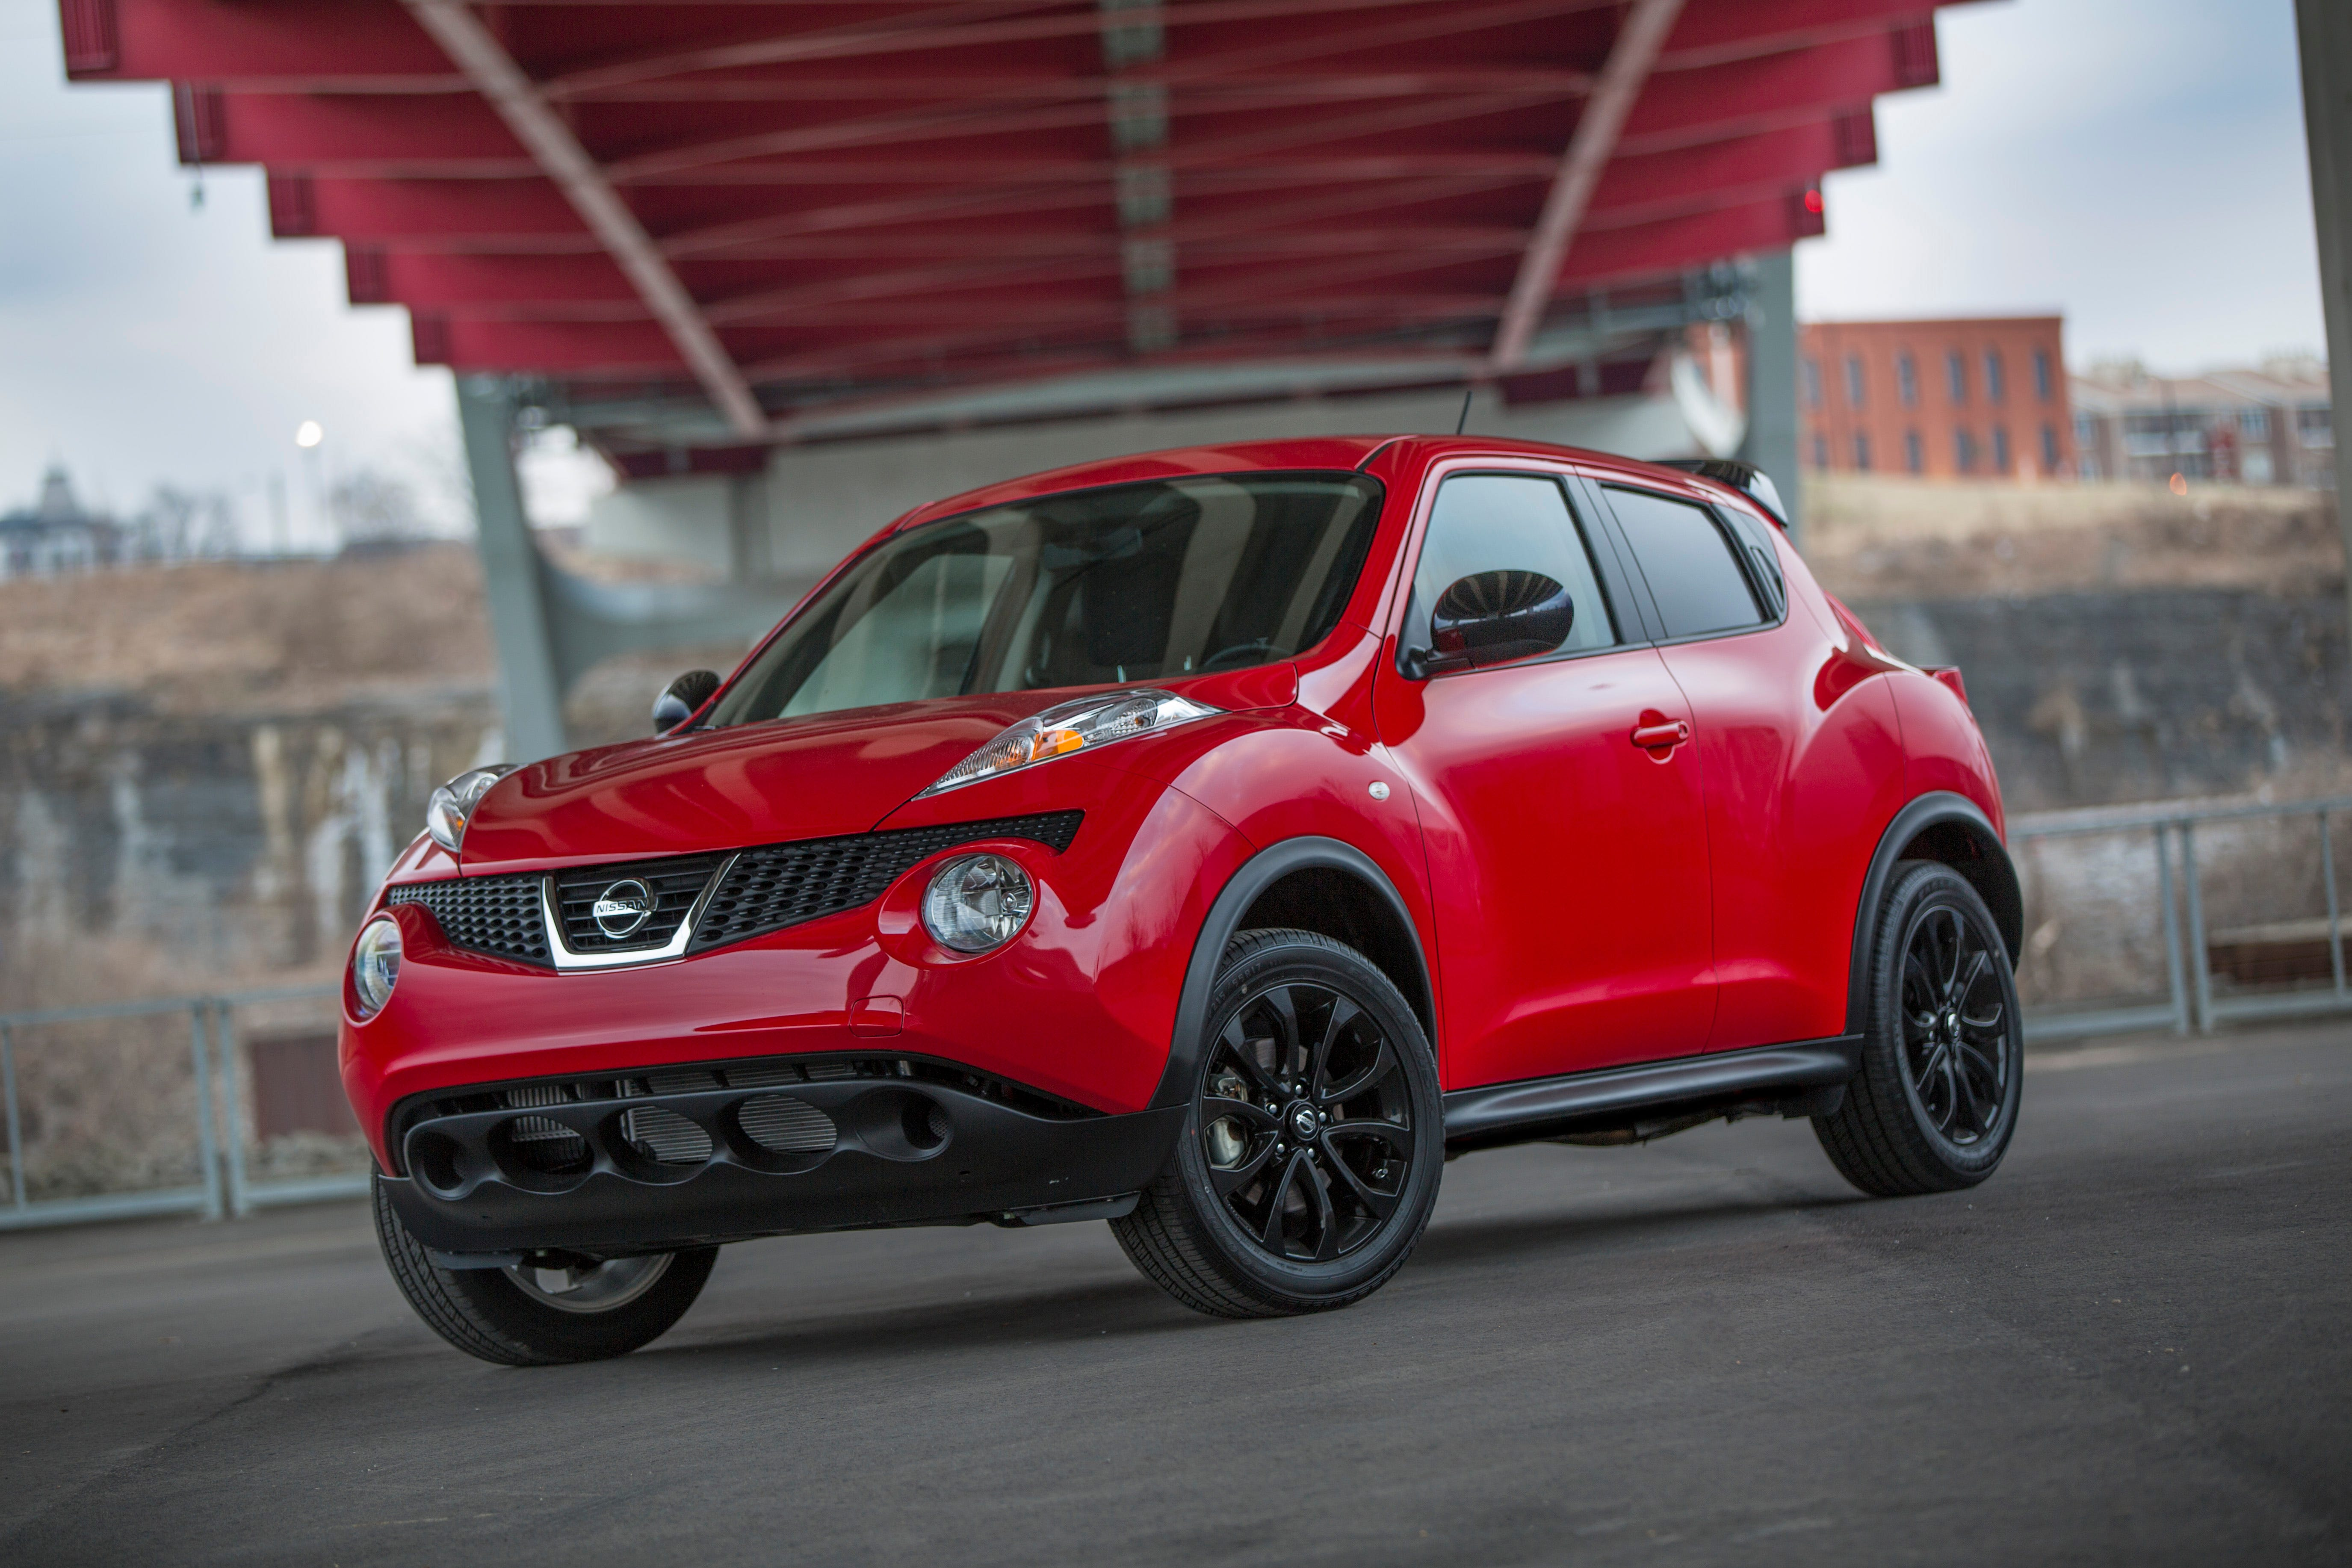 The dynamic Nissan Juke. Reviews happy owners